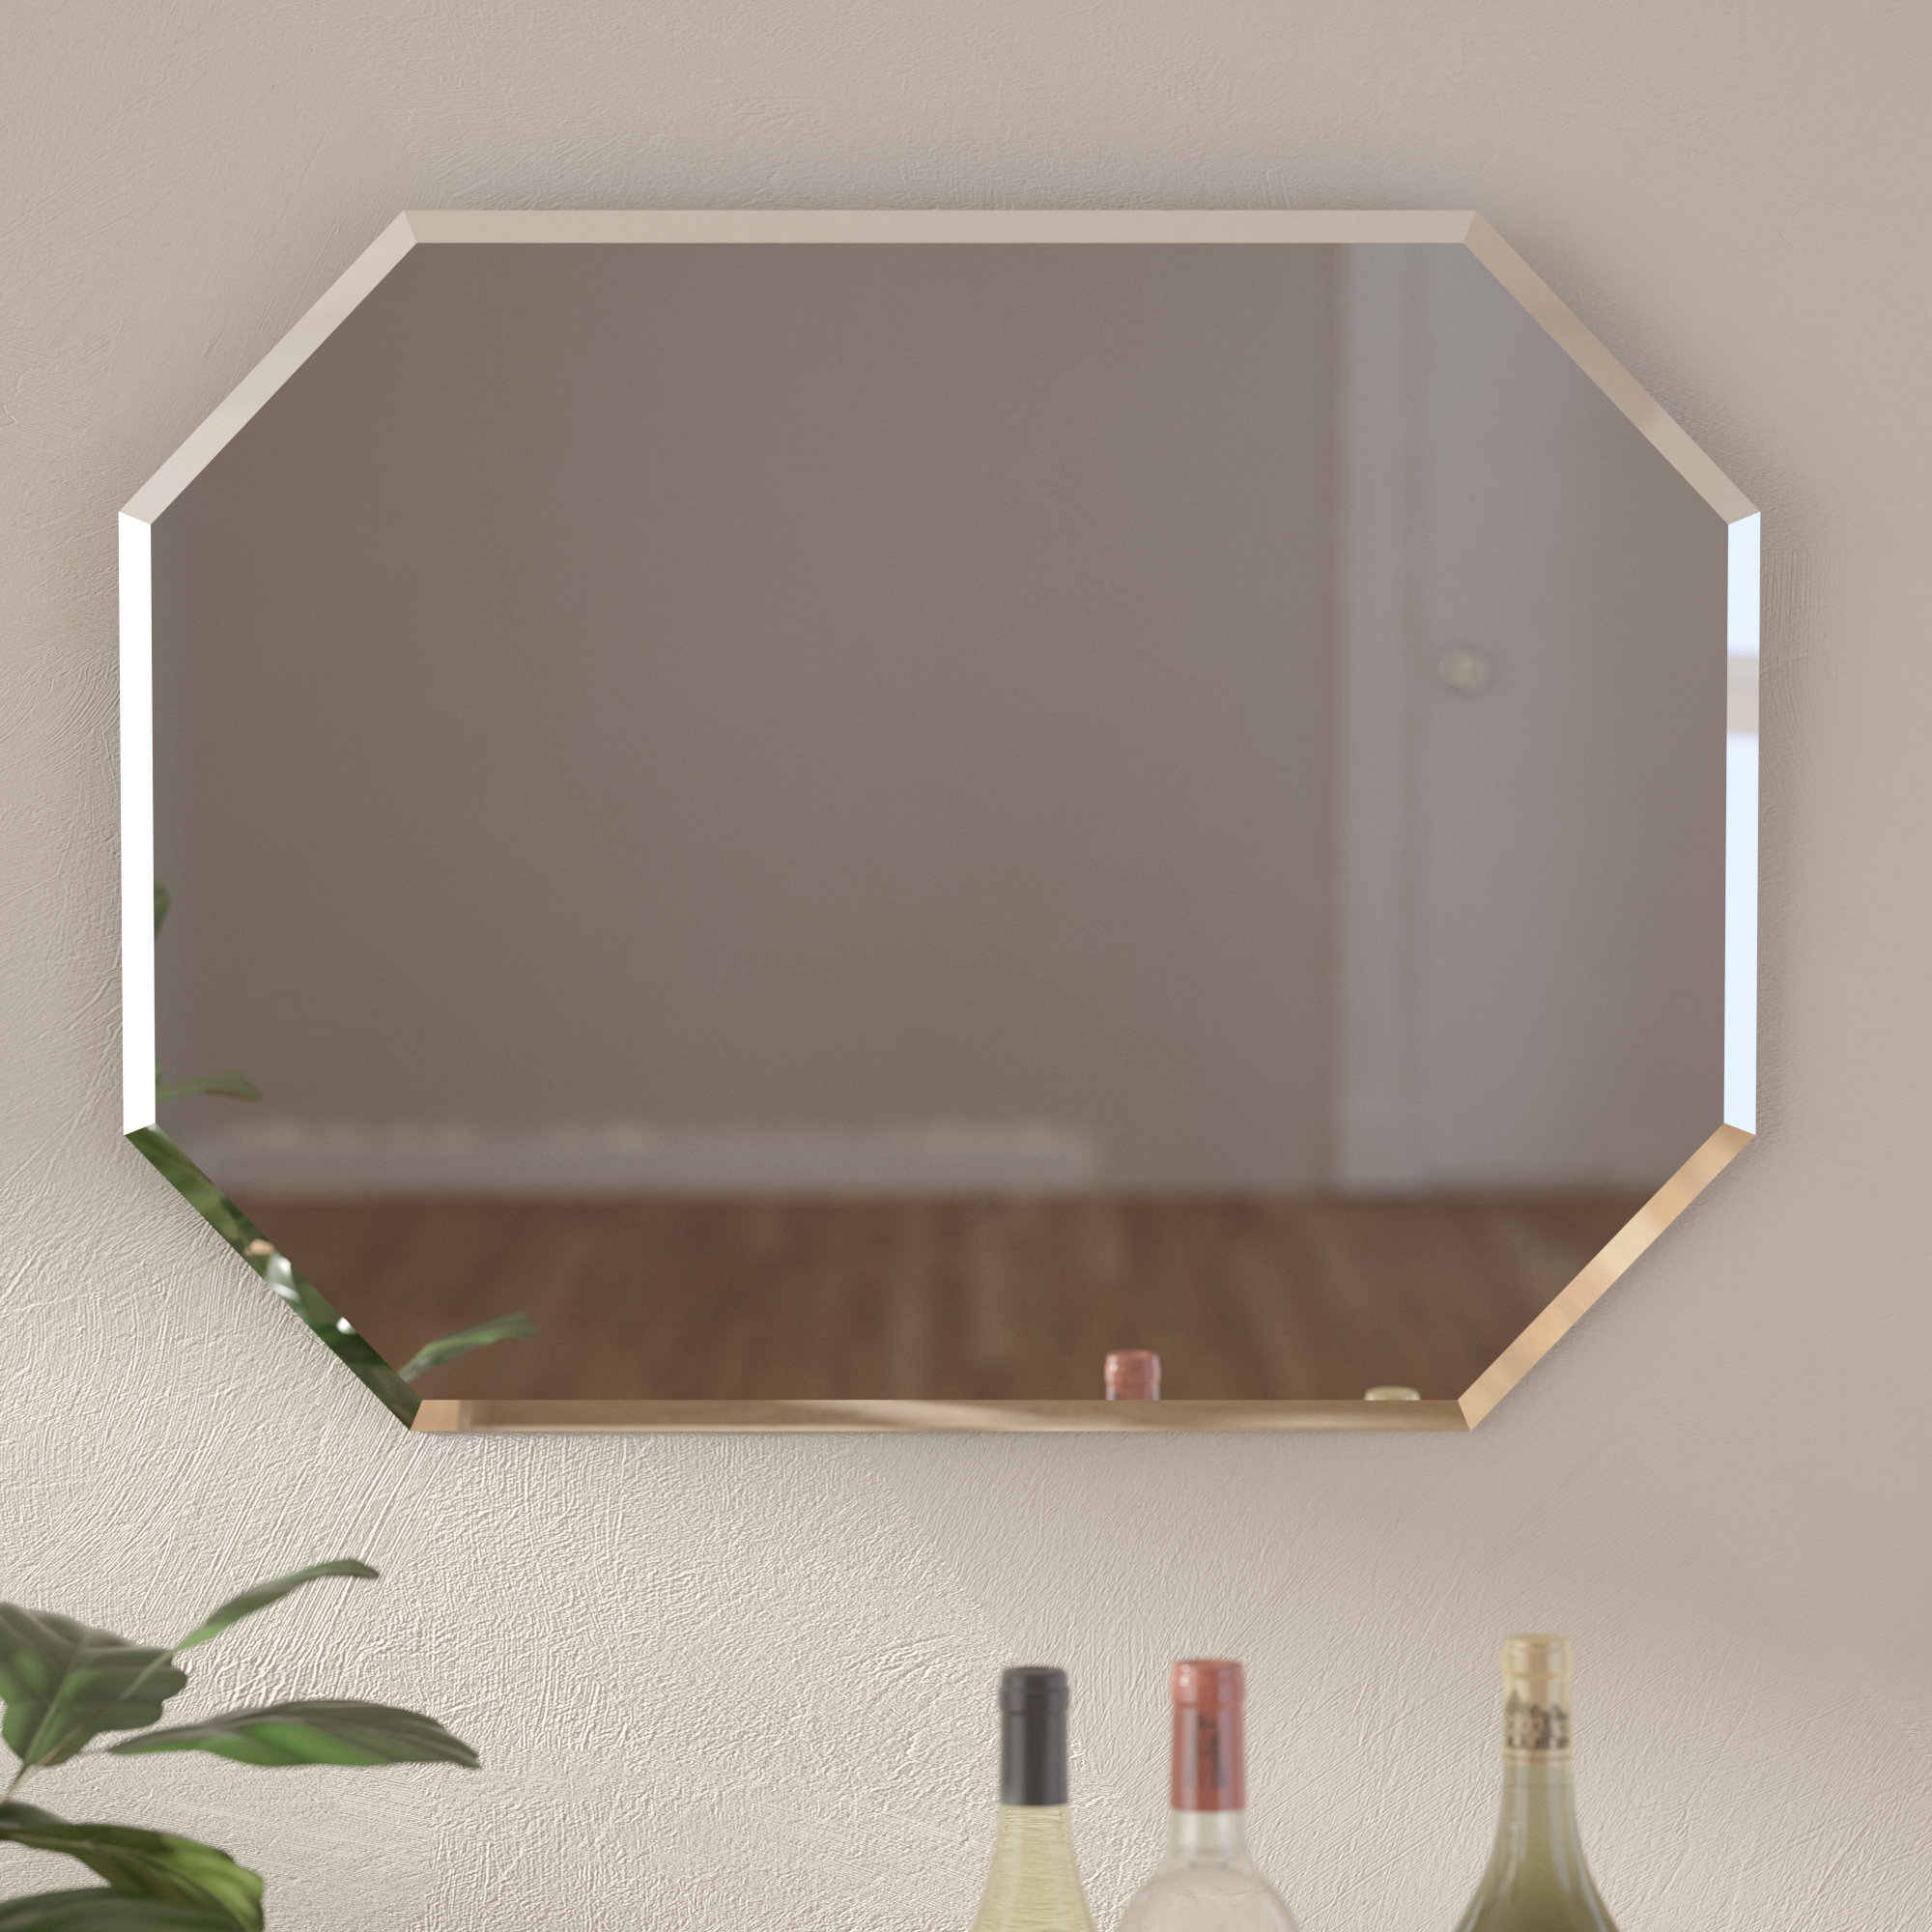 Red Barrel Studio Cannonball Creek Frameless Beveled Wall Pertaining To Tetbury Frameless Tri Bevel Wall Mirrors (View 11 of 20)